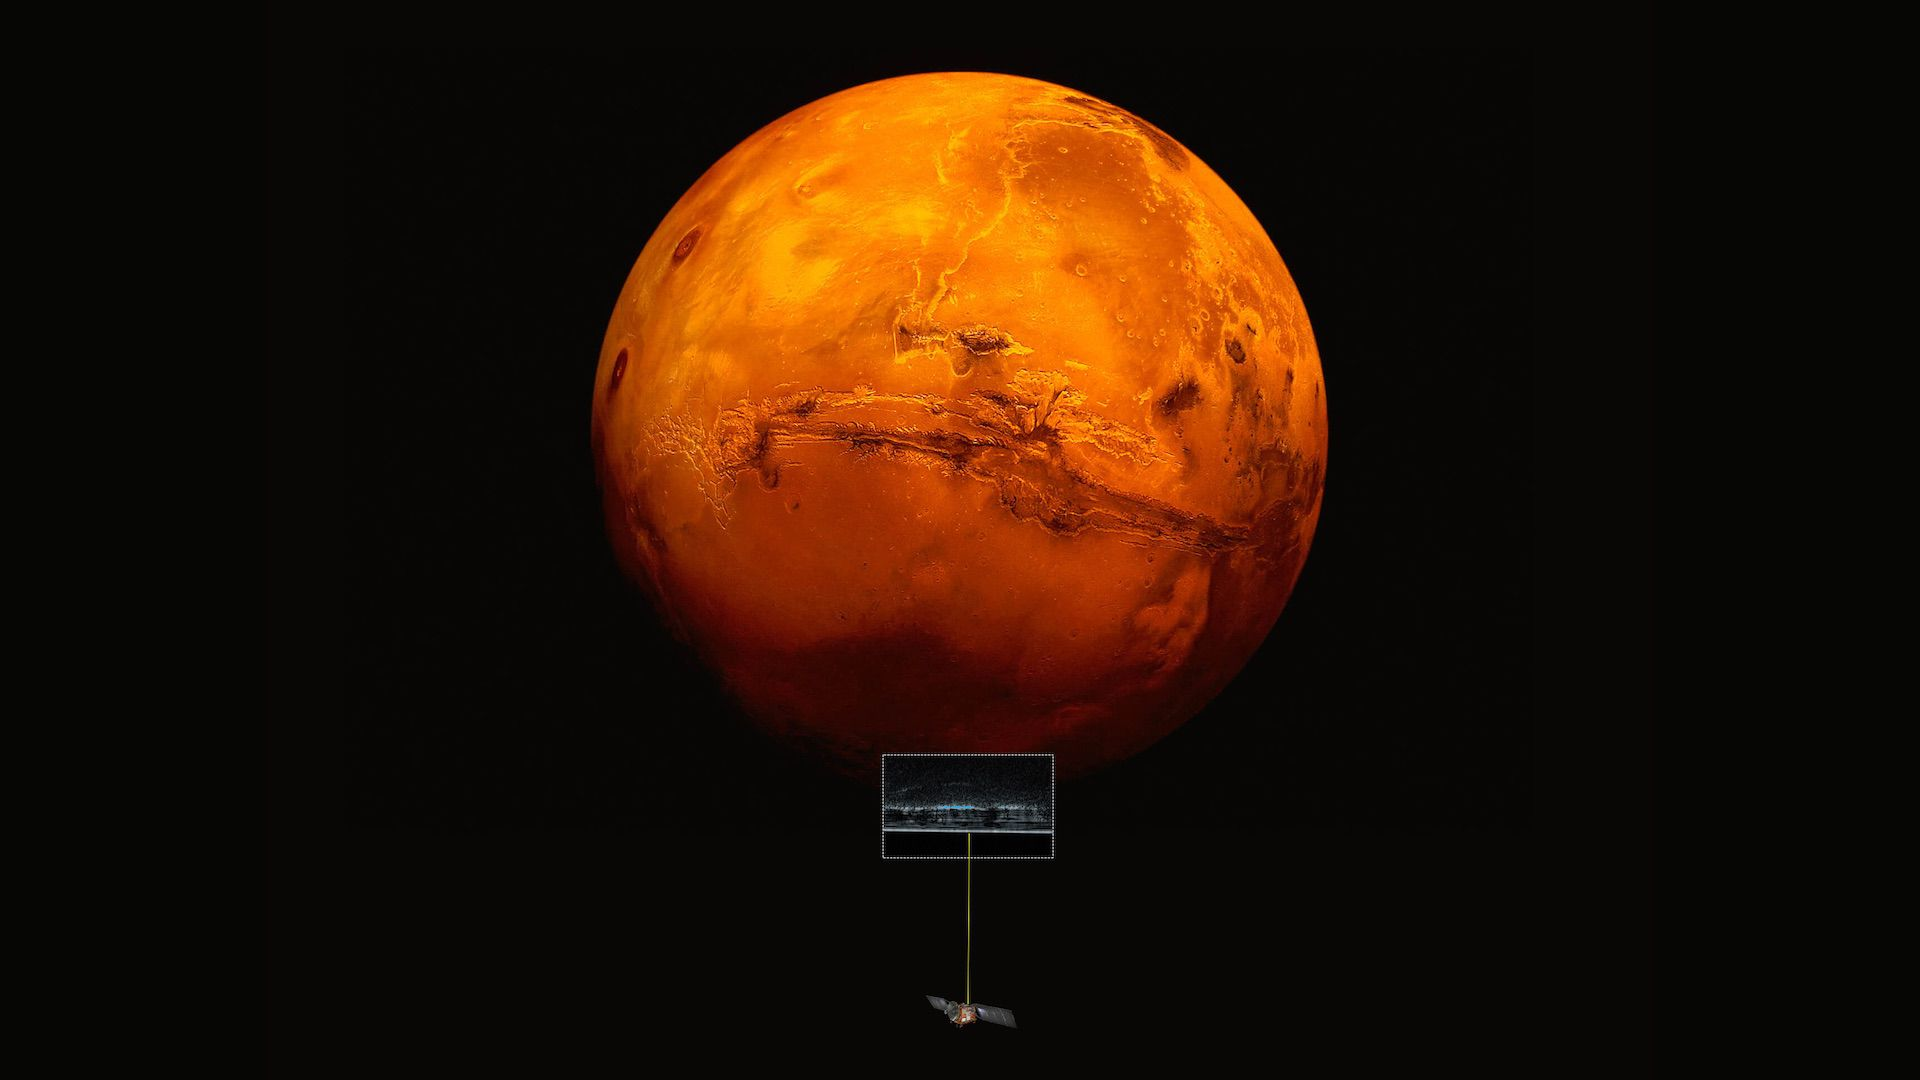 Artistic impression of the Mars Express spacecraft probing the southern hemisphere of Mars, along with the radar cross section of the deposits in that region.